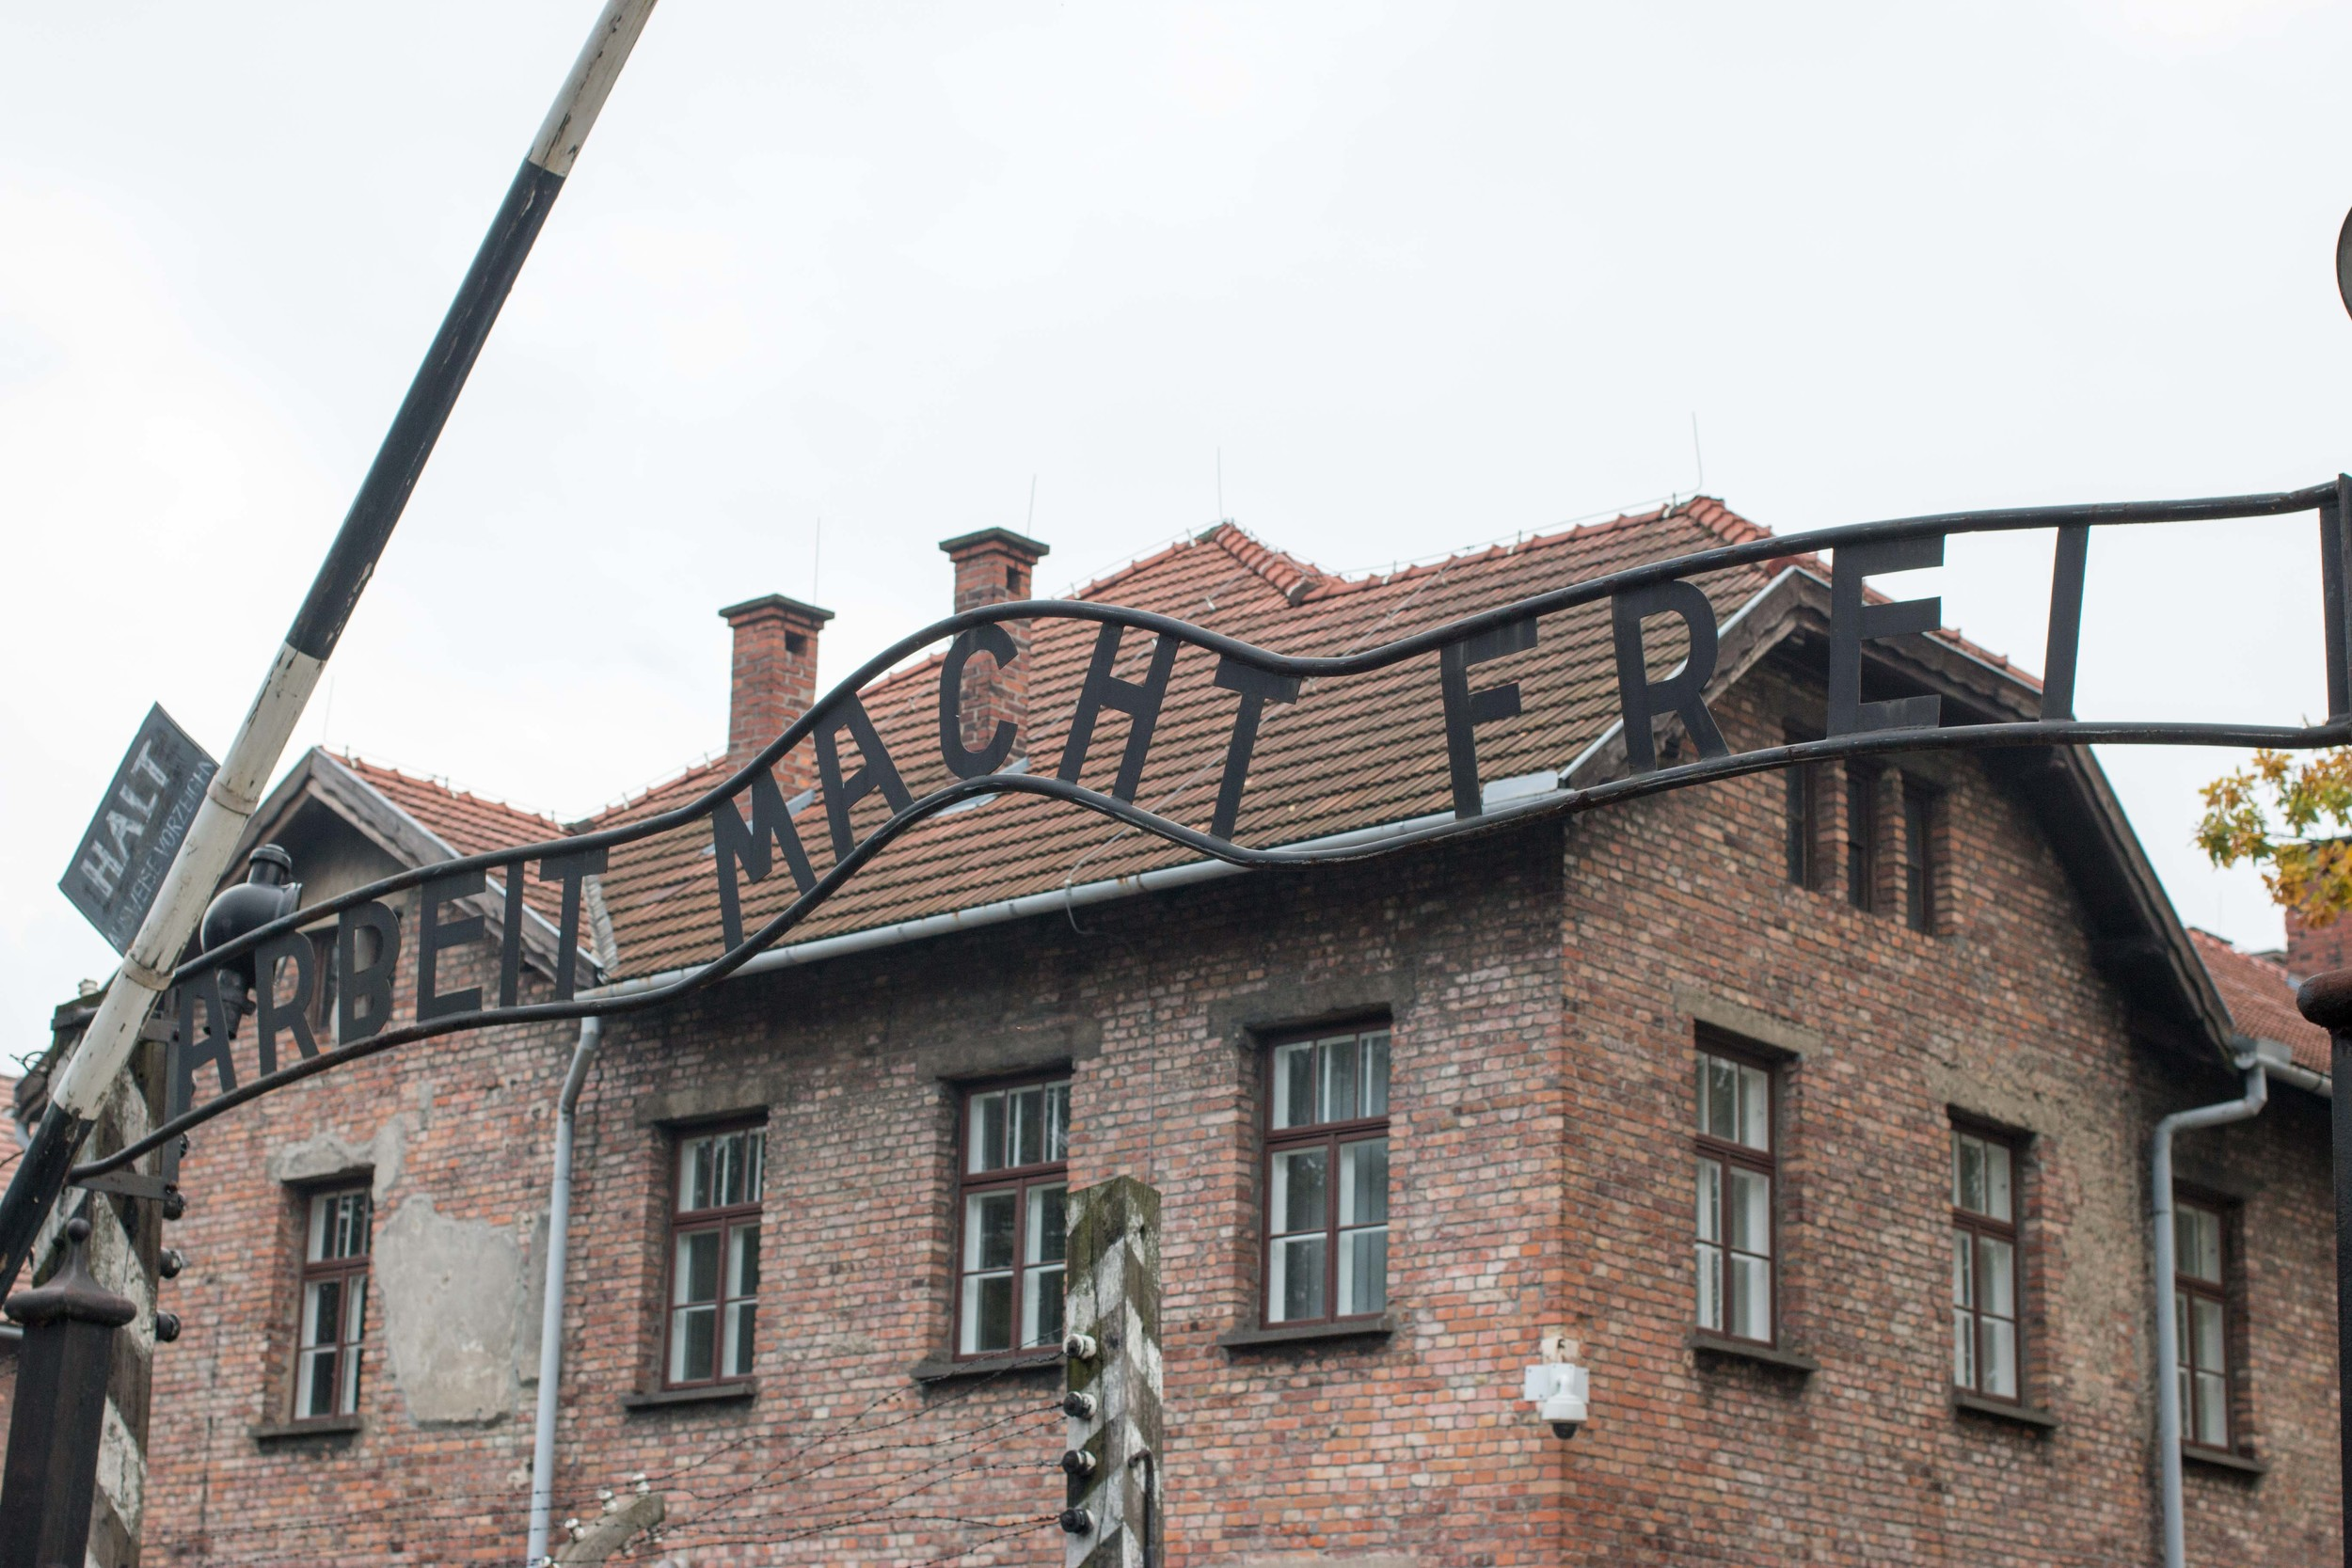 Famous gate over the ENTRANCE to Auschwitz